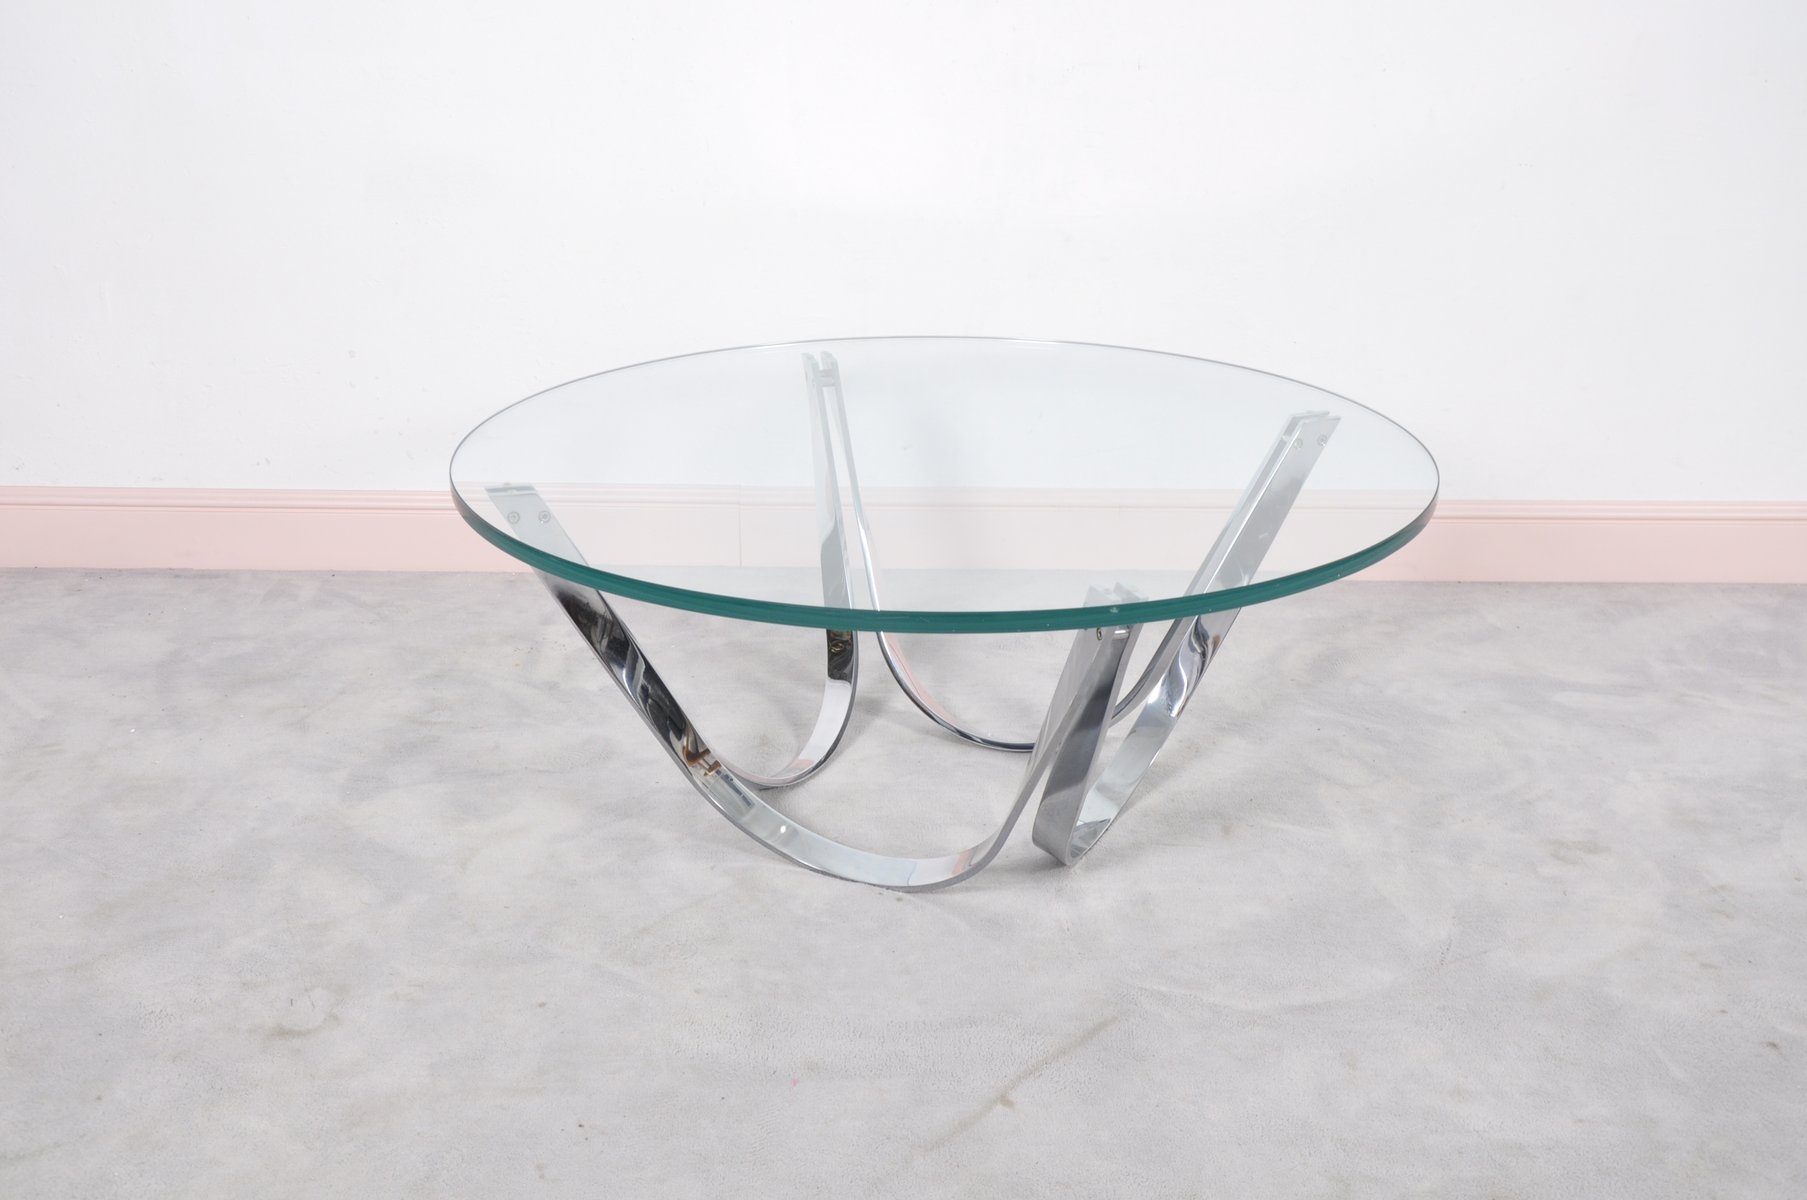 Round glass coffee table by roger sprunger for dunbar for Round glass coffee tables for sale